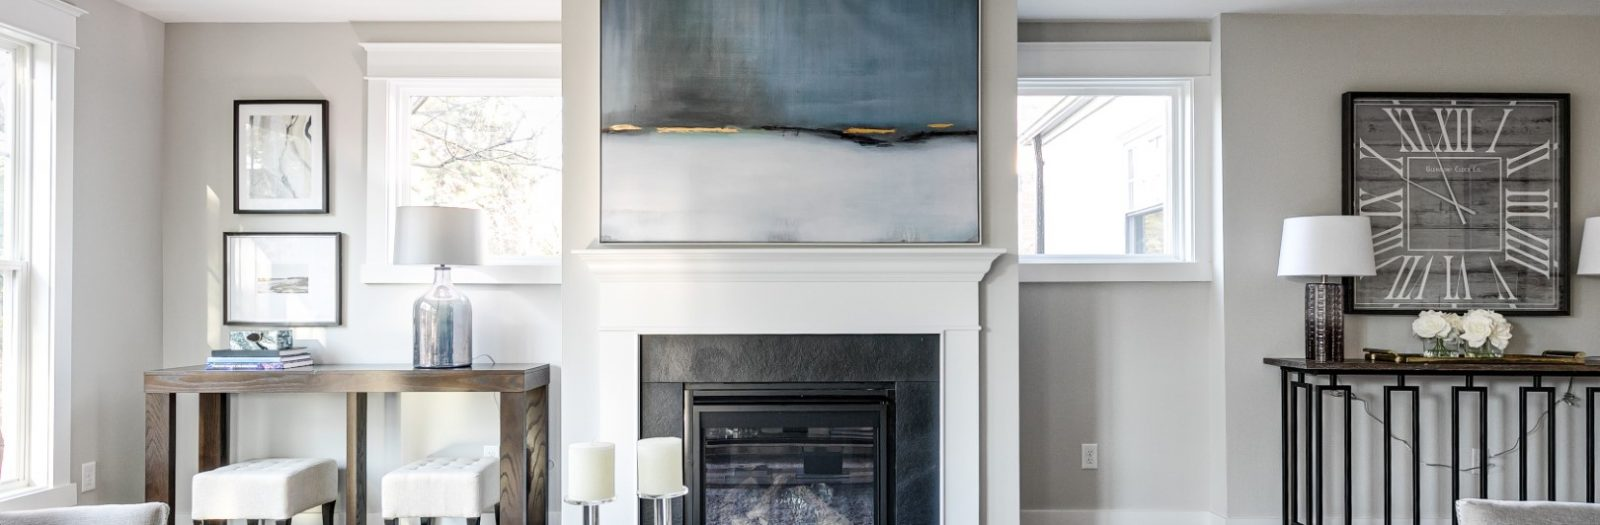 Family room with built-ins in renovated home by Richmond Hill Design-Build